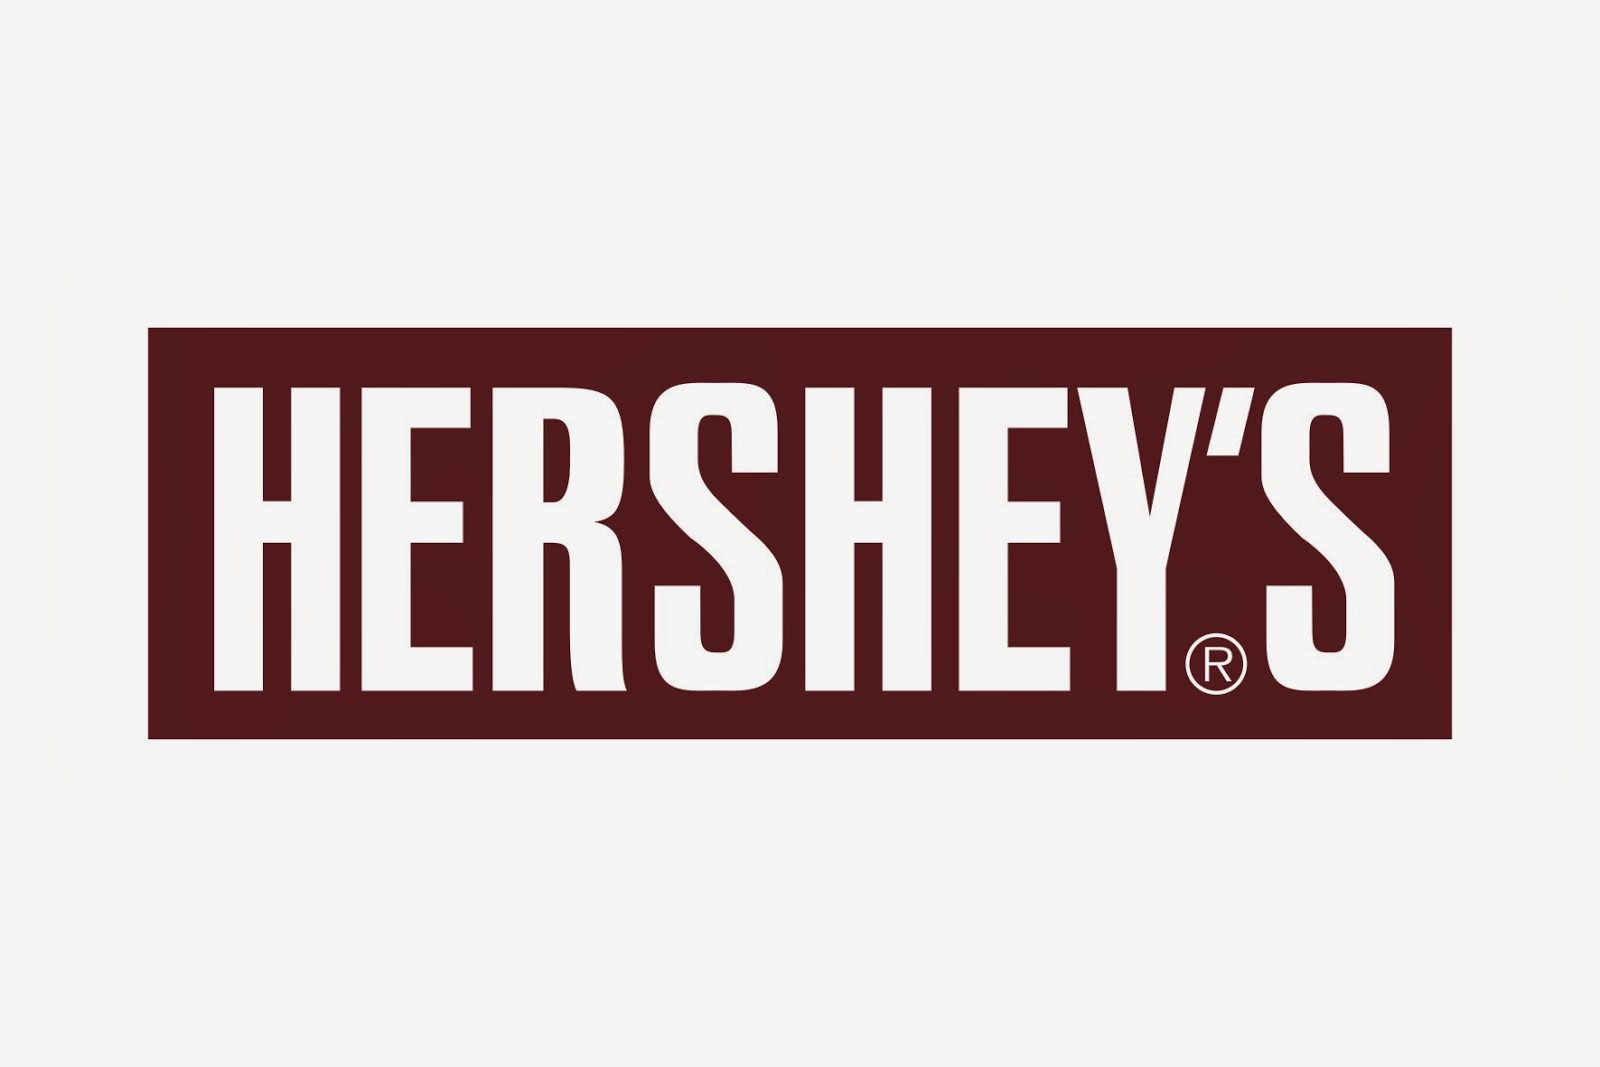 Hershey Car Show >> Hersheys Logo | Car Interior Design